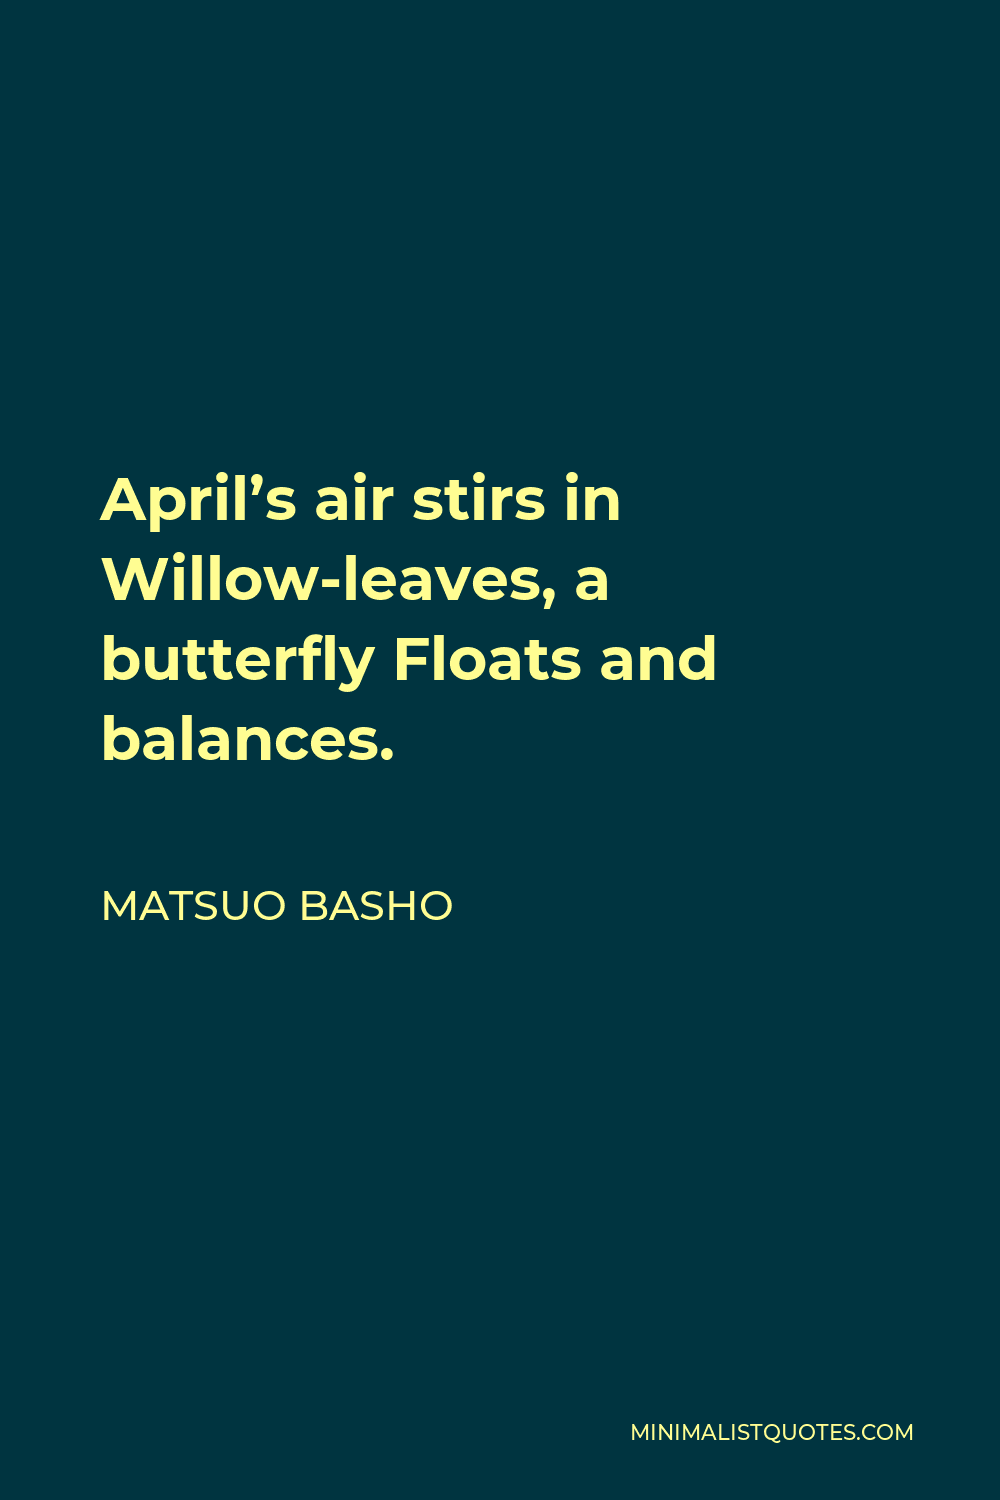 Matsuo Basho Quote - April's air stirs in Willow-leaves, a butterfly Floats and balances.